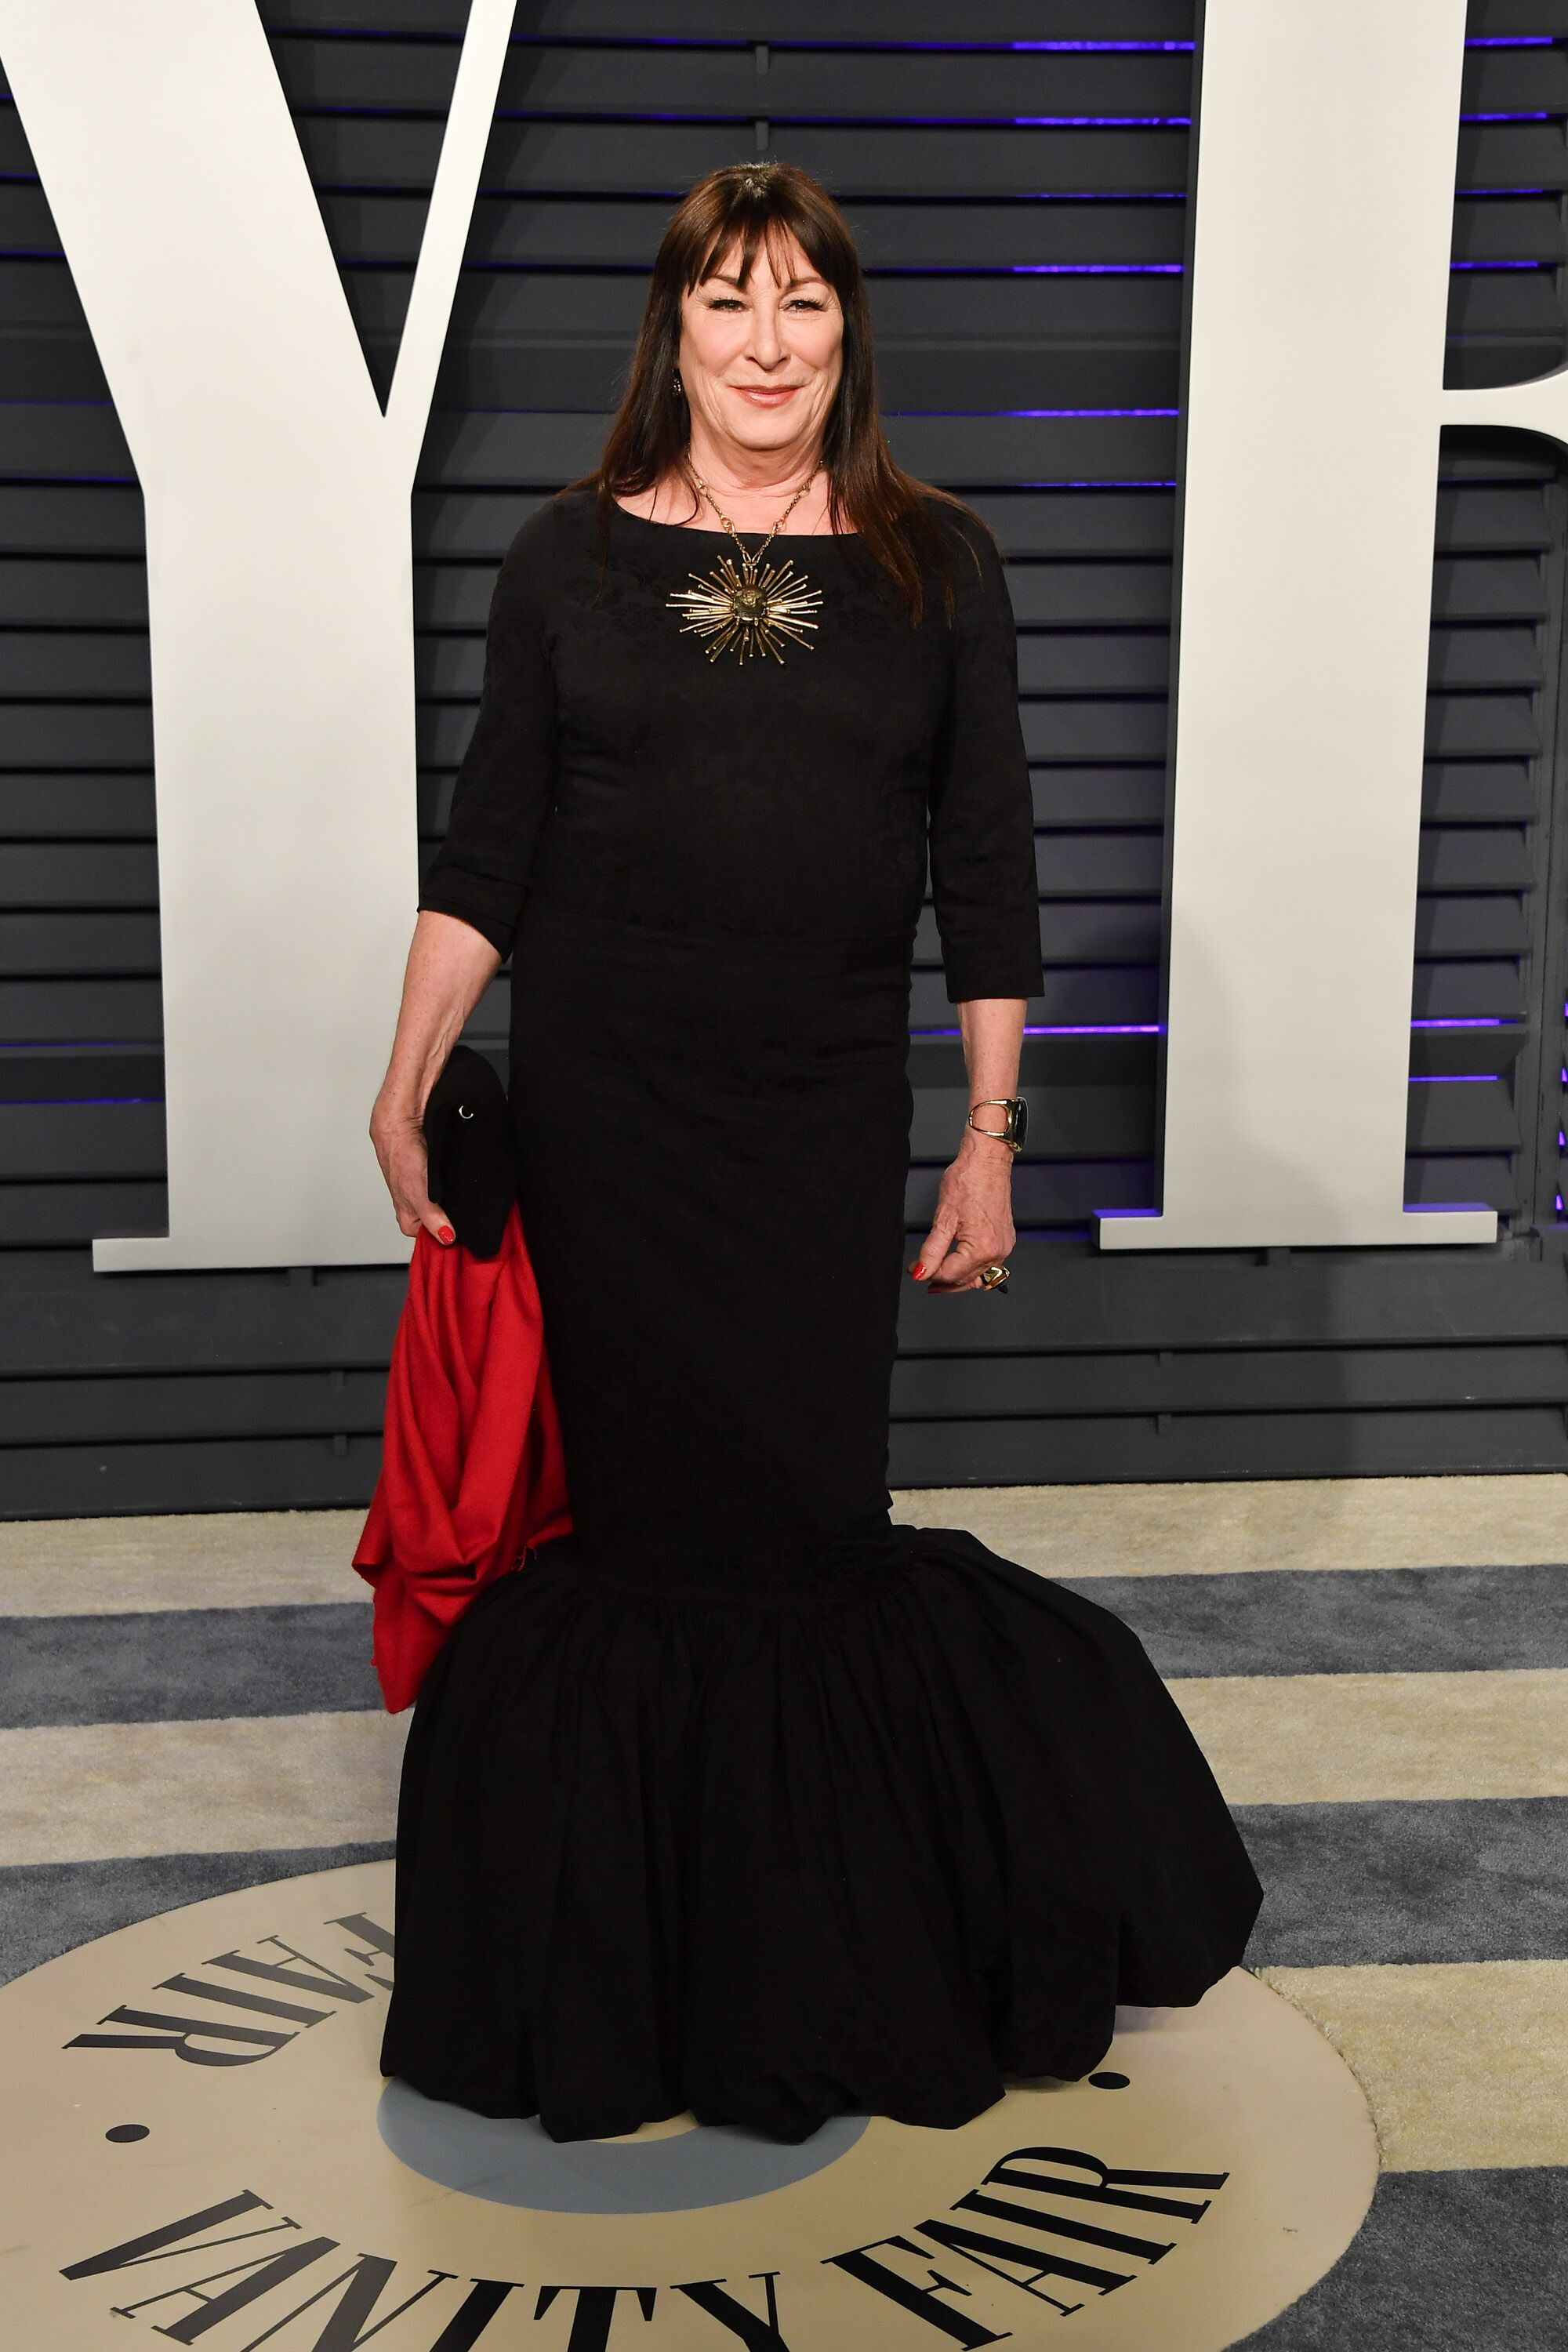 Anjelica Huston attends the 2019 Vanity Fair Oscar Party hosted by Radhika Jones at Wallis Annenberg Center | Getty Images